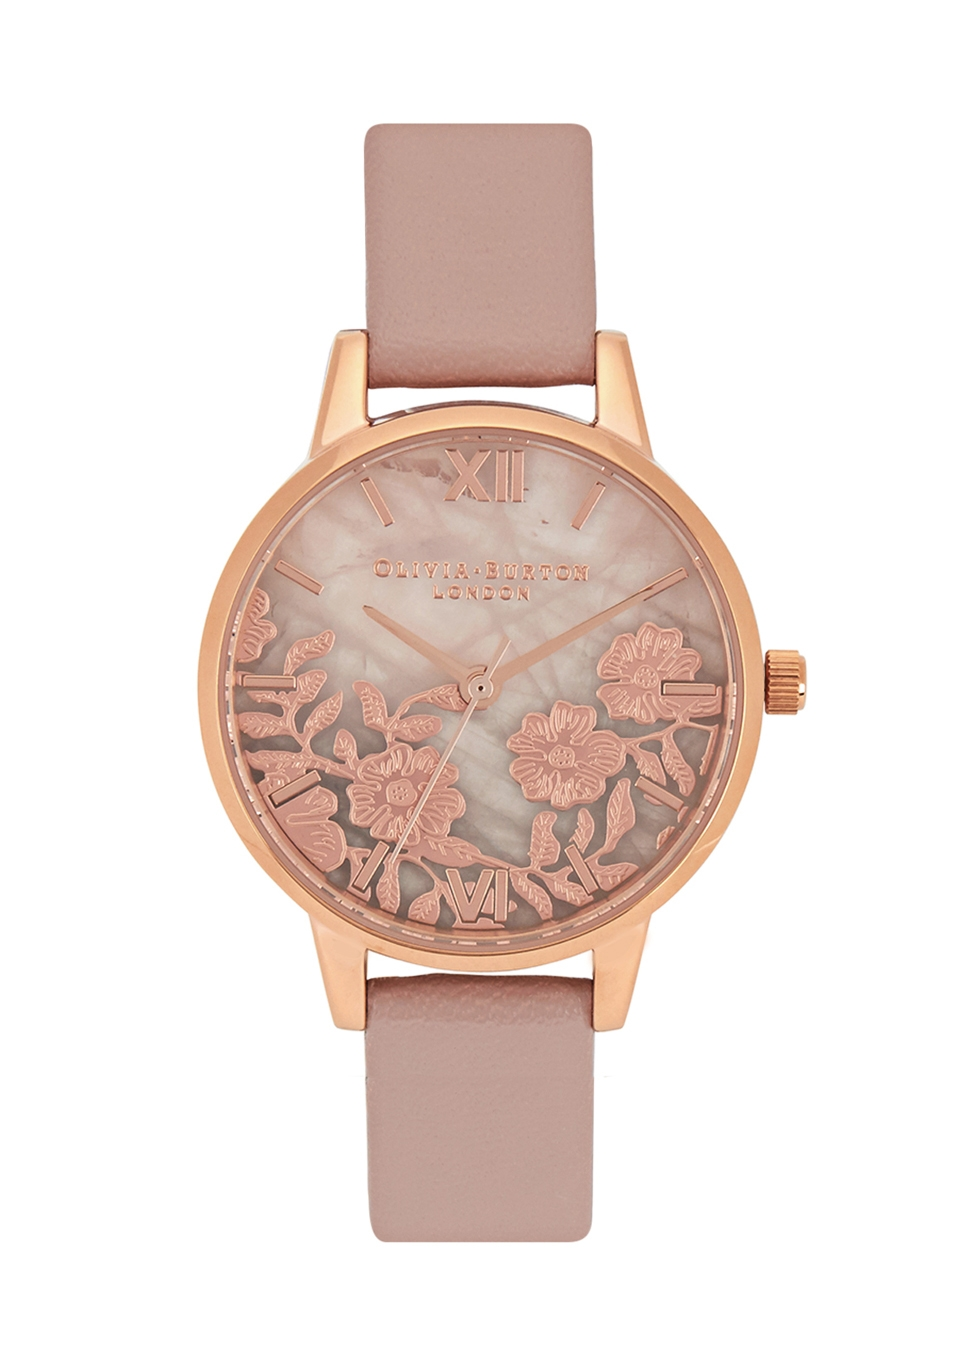 OLIVIA BURTON FLORAL ROSE GOLD-PLATED WATCH